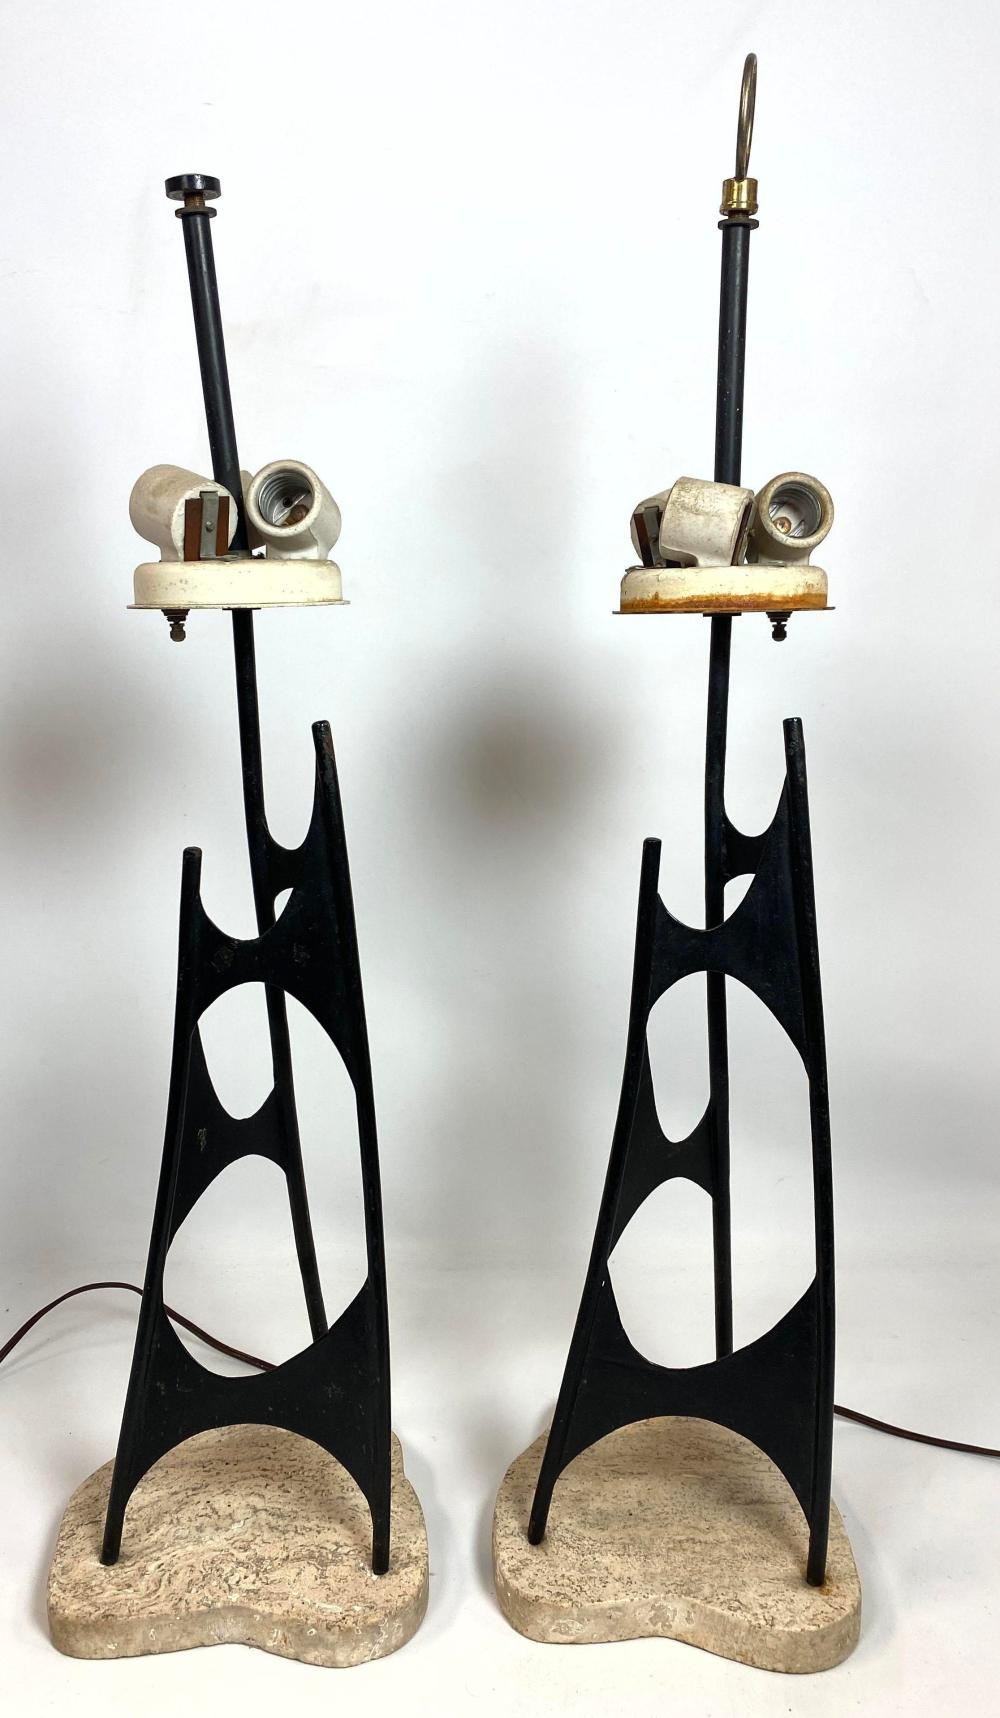 Image of: Sold Price Pair Artisan Mid Century Modern Table Lamps Freeform June 2 0120 10 00 Am Edt